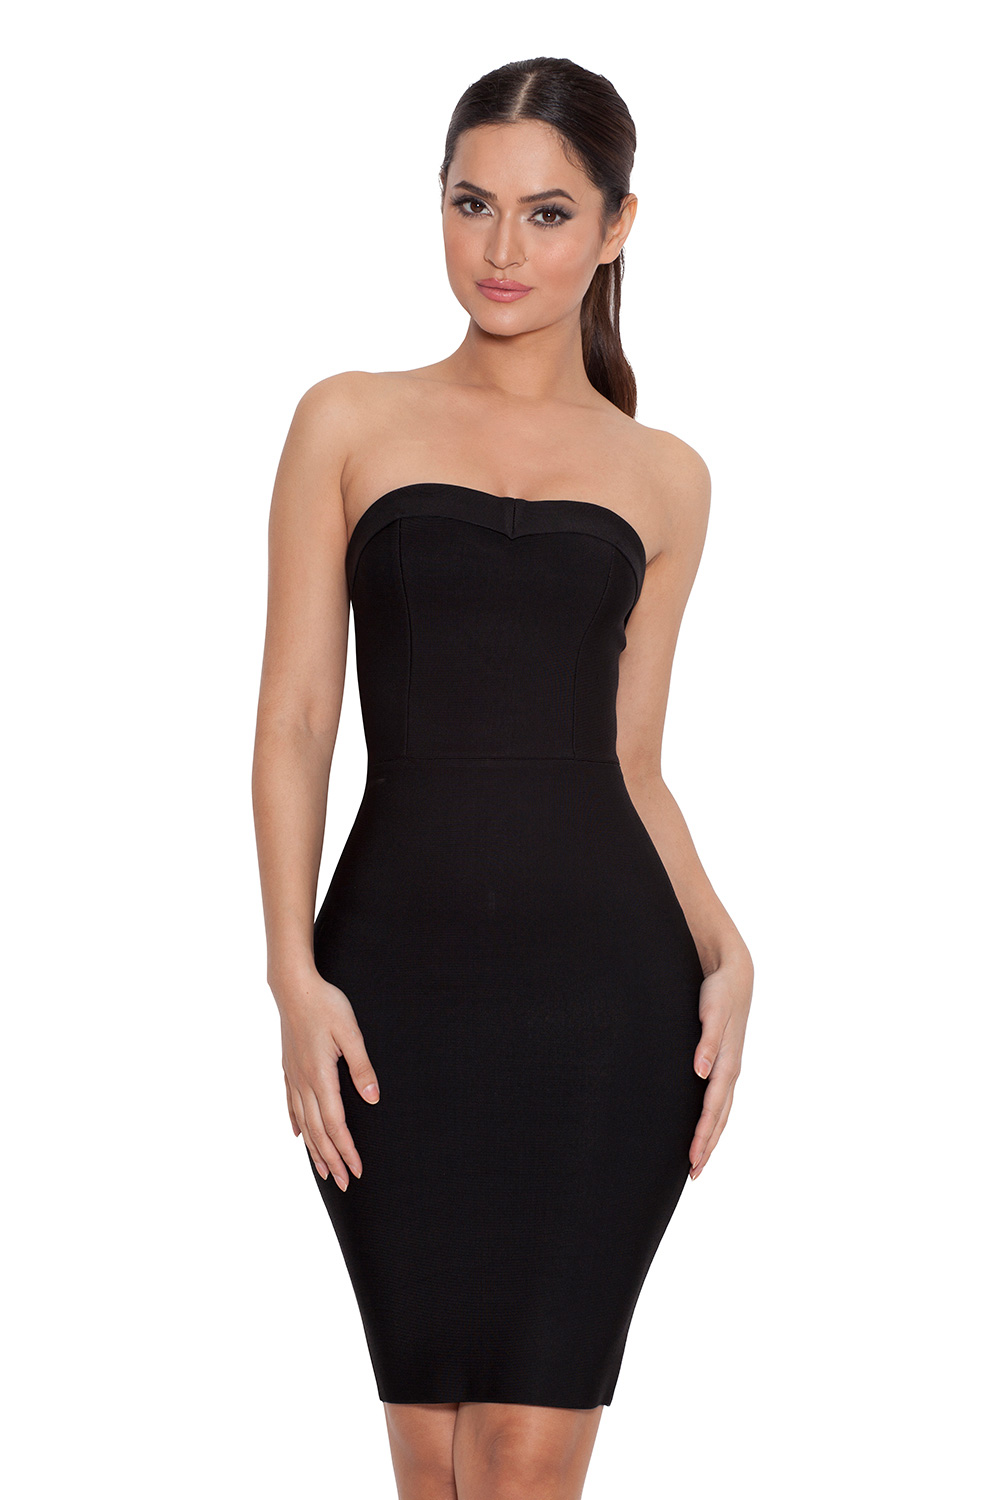 Simple Black Strapless Dress Cocktail Dresses 2016